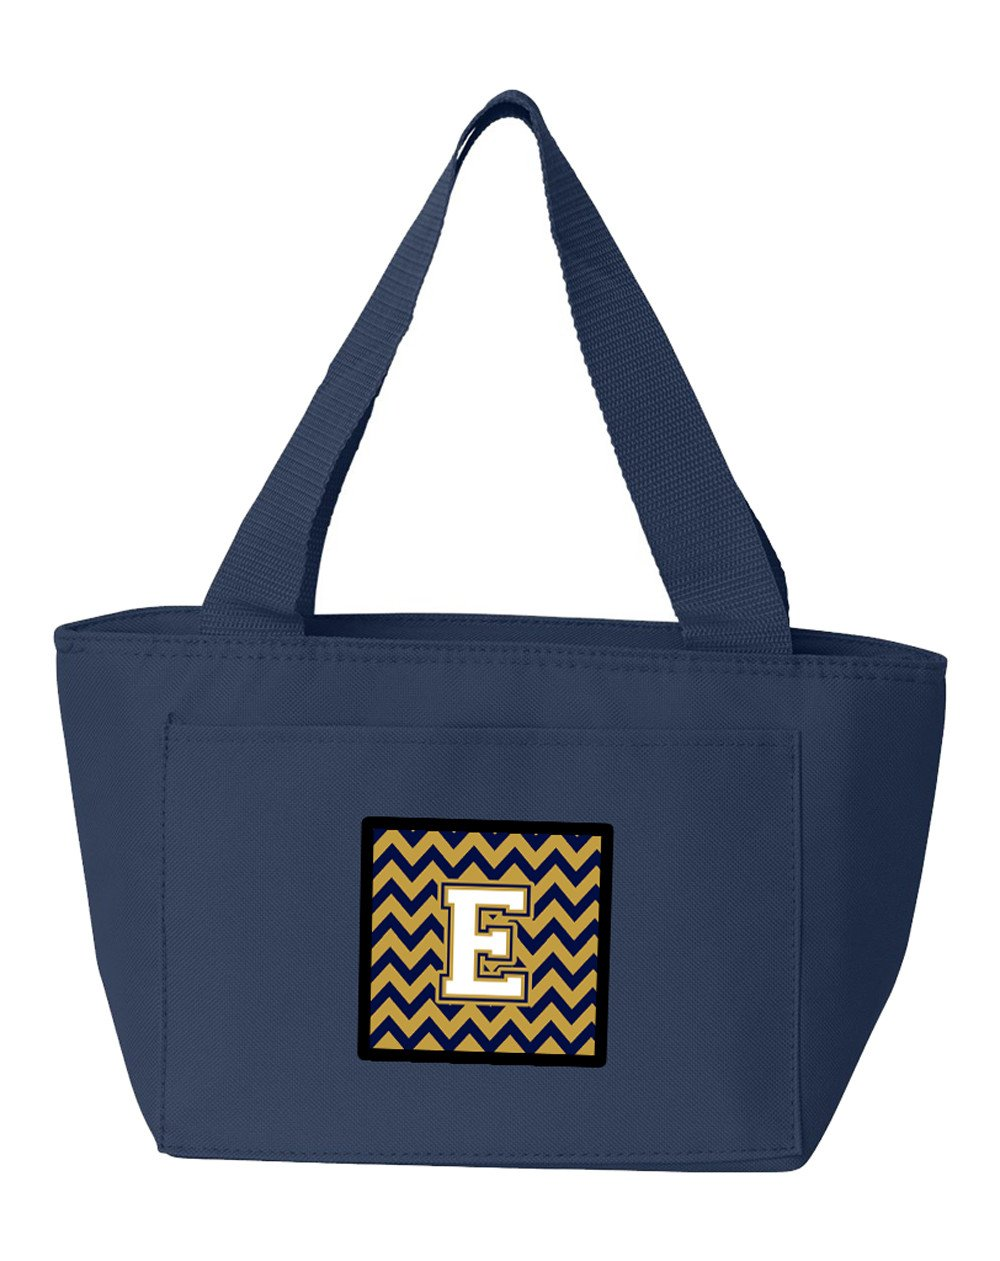 Letter E Chevron Navy Blue and Gold Lunch Bag CJ1057-ENA-8808 by Caroline's Treasures